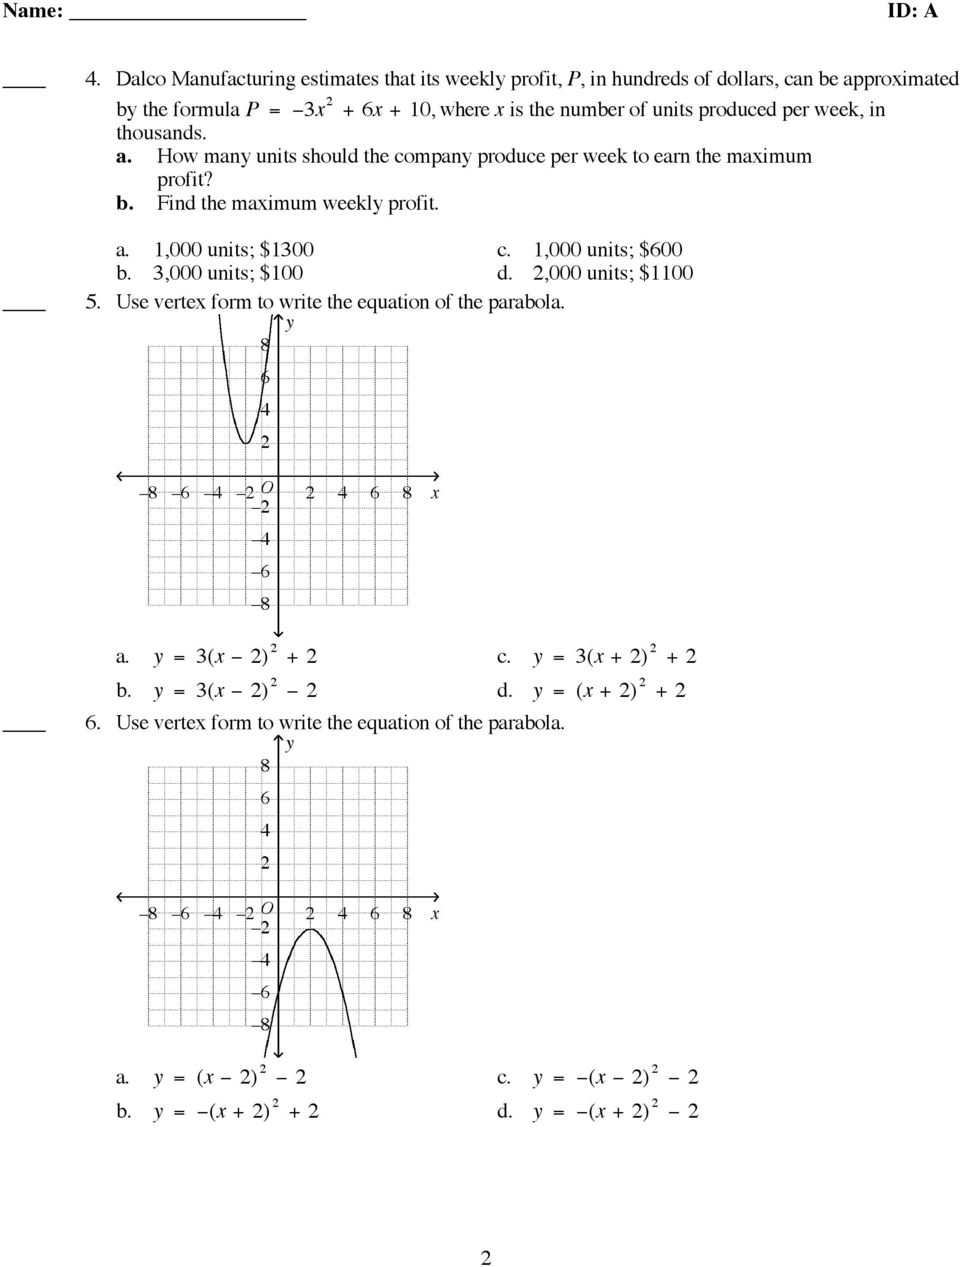 Algebra 2 Chapter 5 Practice Test (Review) - Pdf Free Download